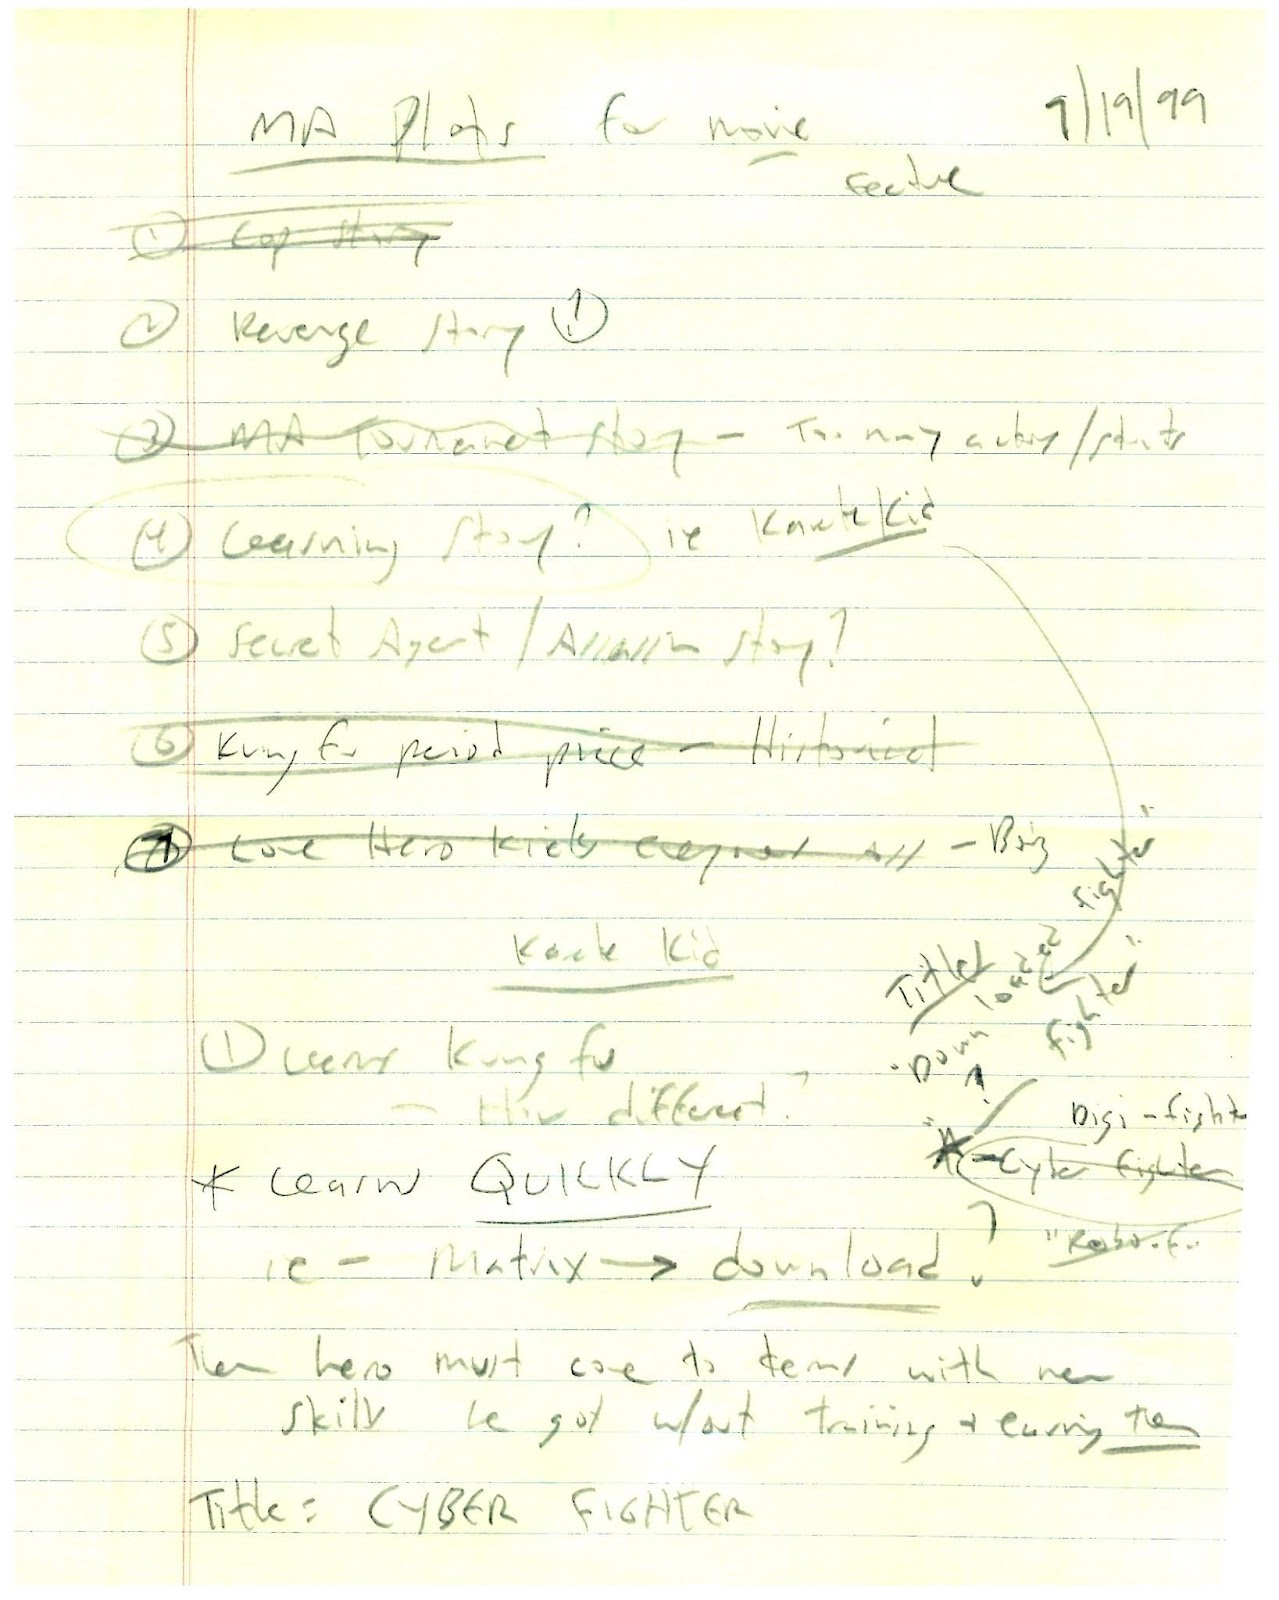 Cyber Fighter Original Notes 1999.jpg